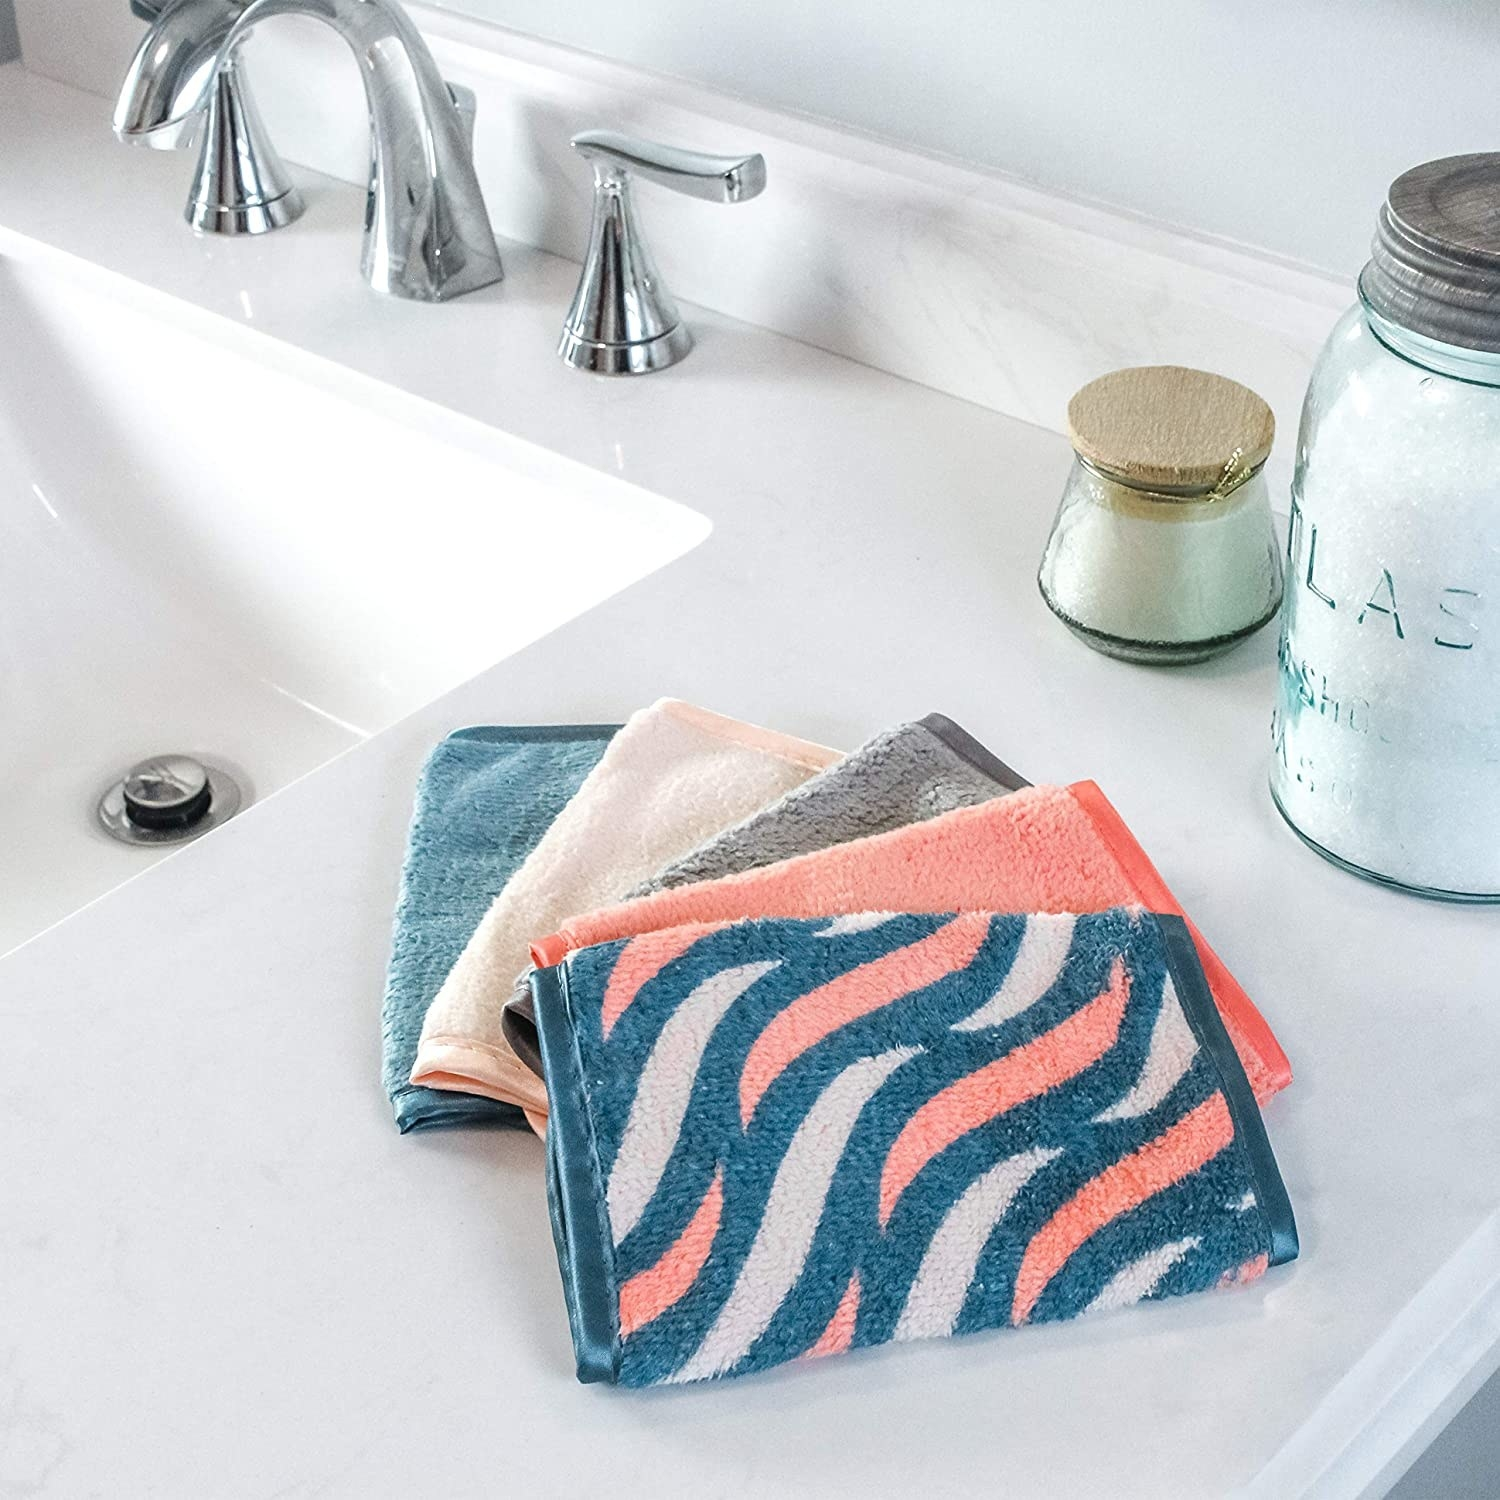 five of the cloths on a sink